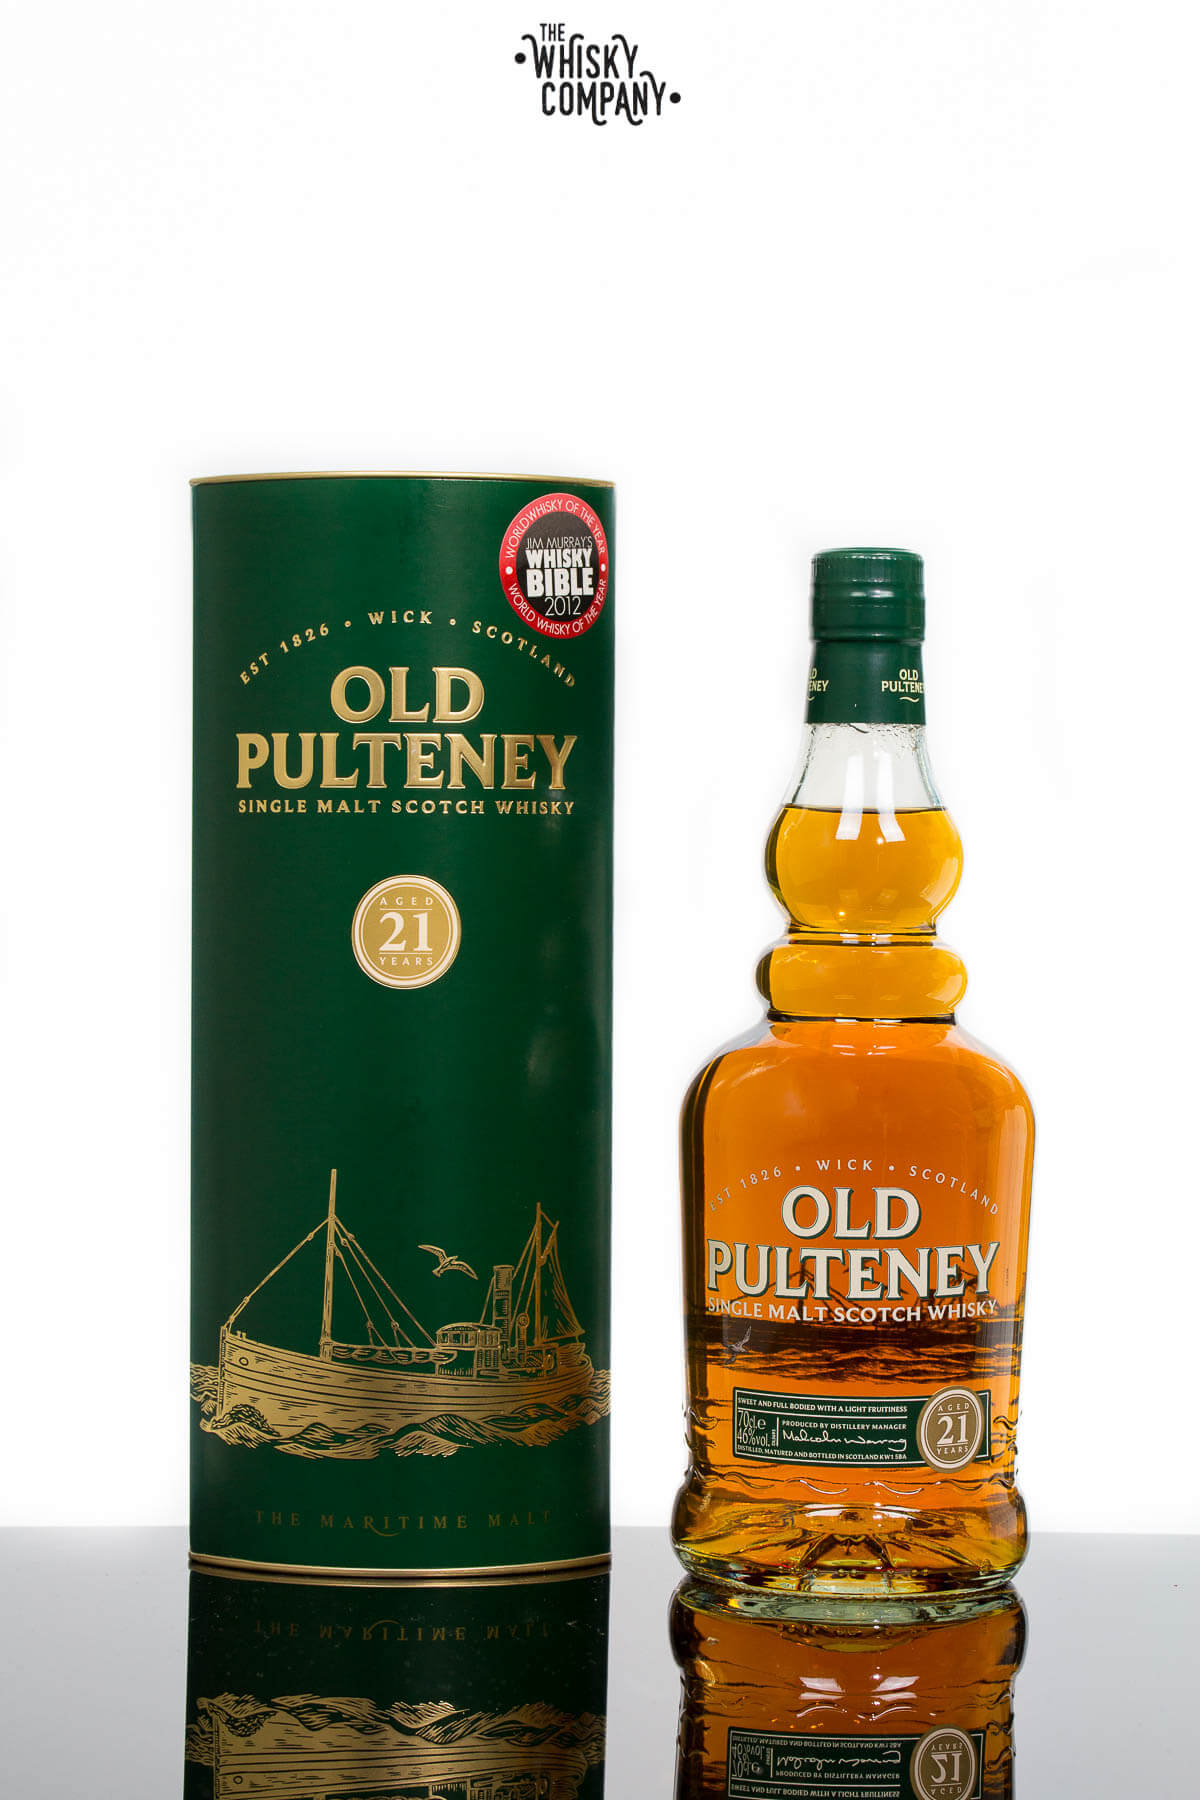 pulteney mature singles The dalmore 15 year old was first launched  mature whisky  starting with simple single malts of tender years and working our way outwards to singles of greater.